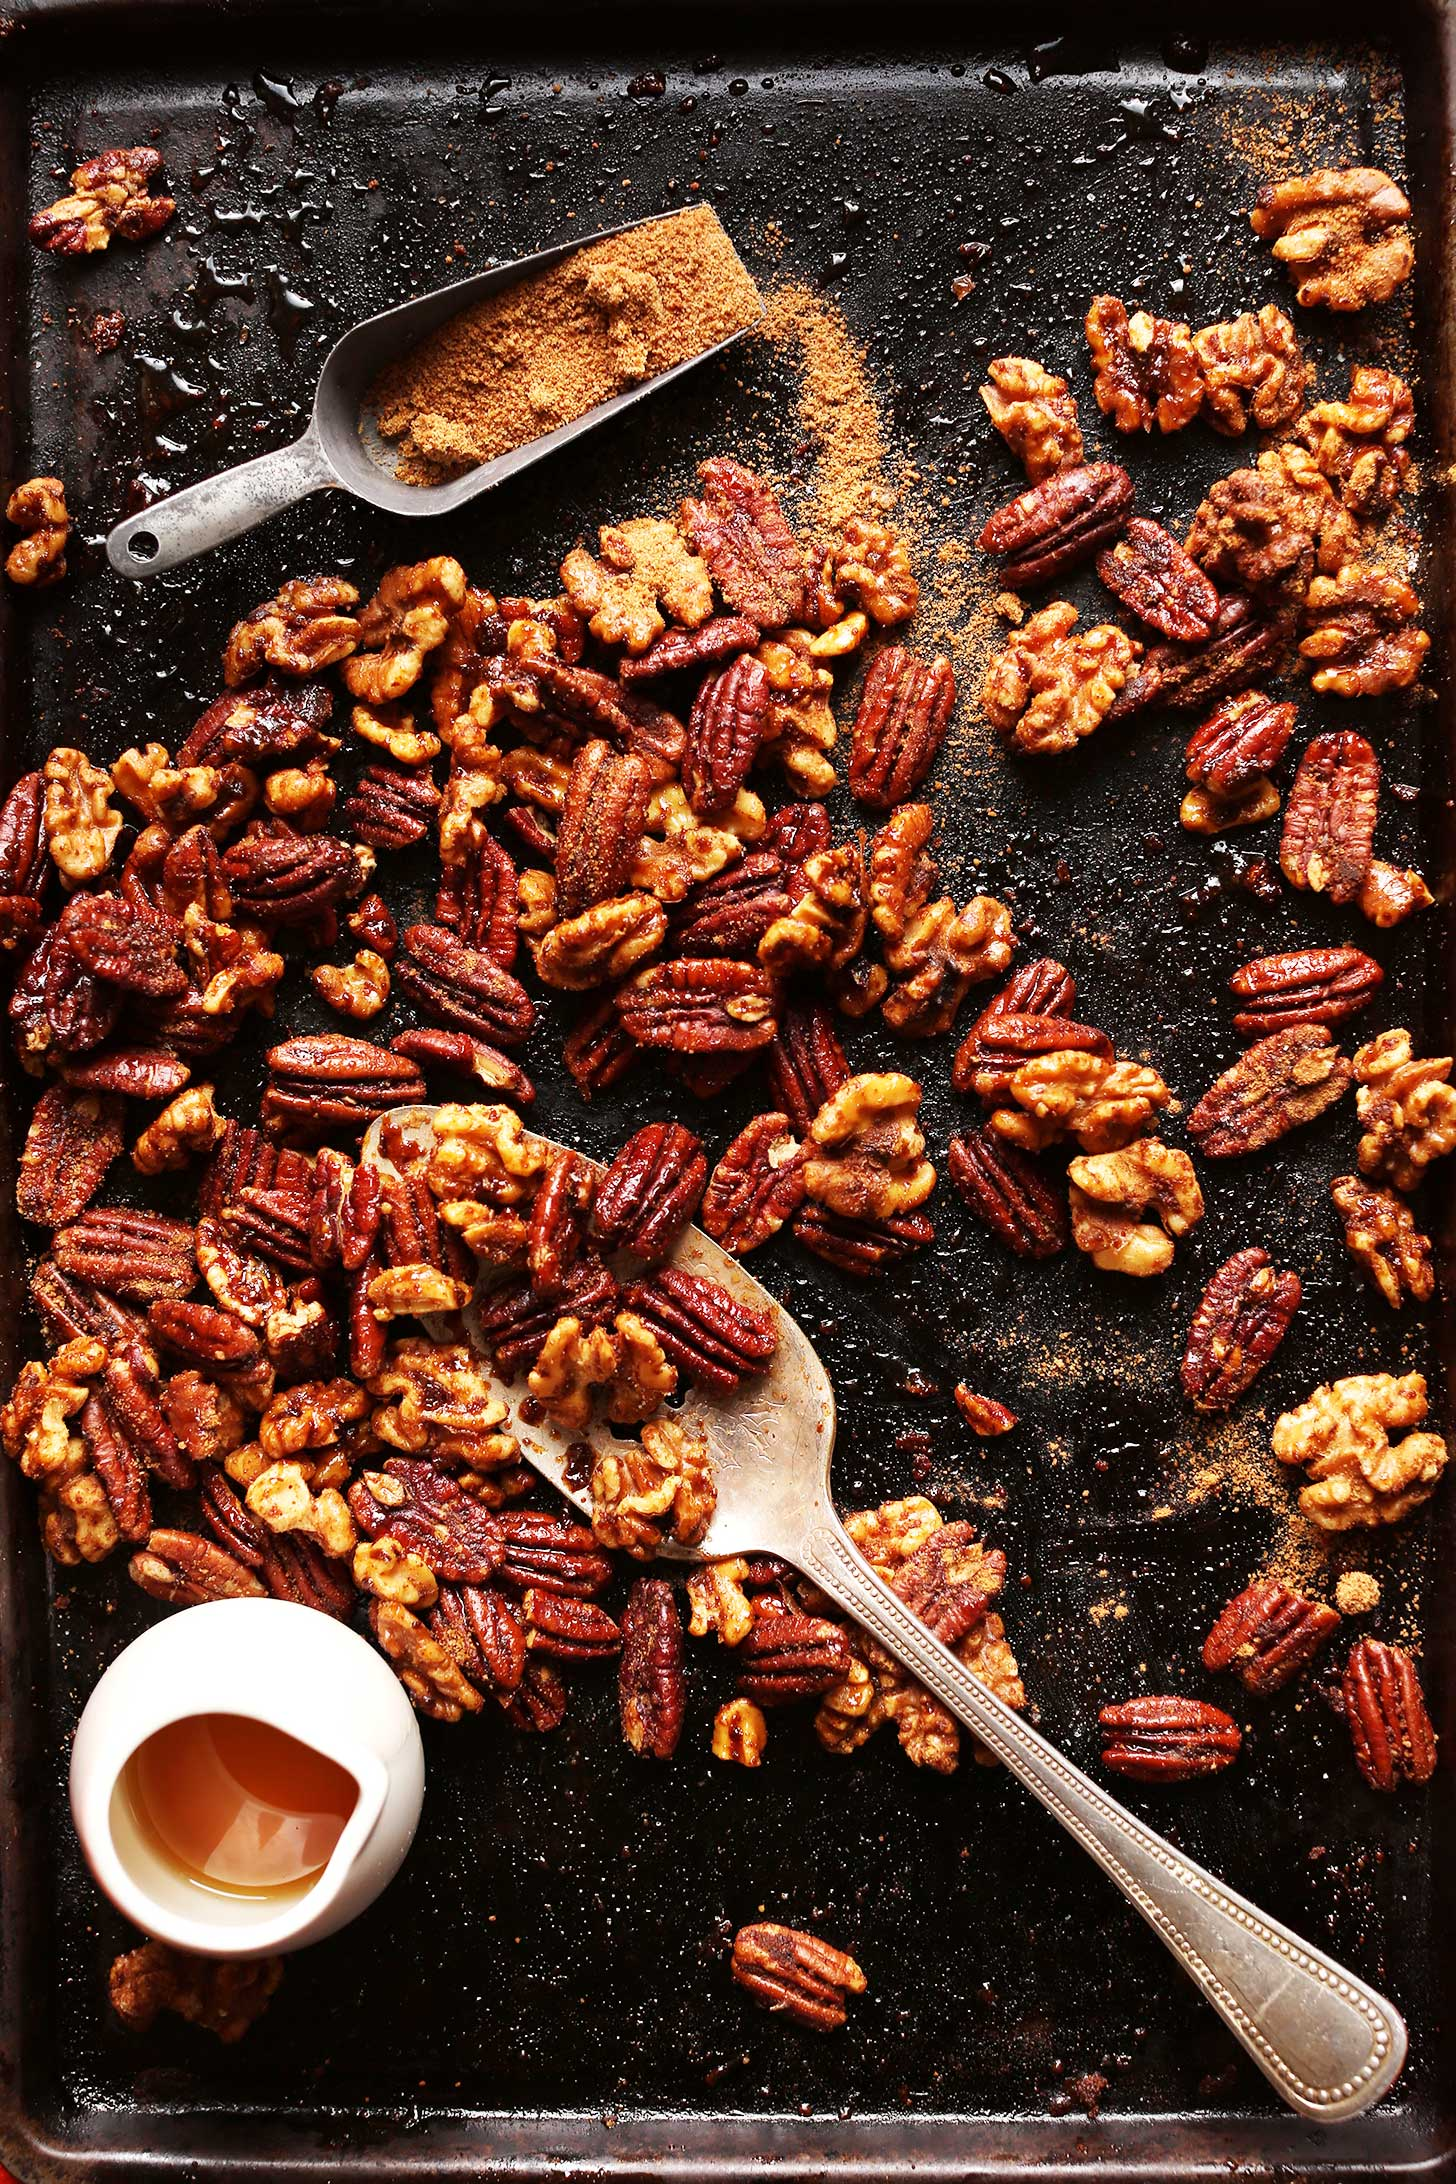 Baking sheet with walnuts and pecans ready to be made into Roasted Candied Nuts for the holidays